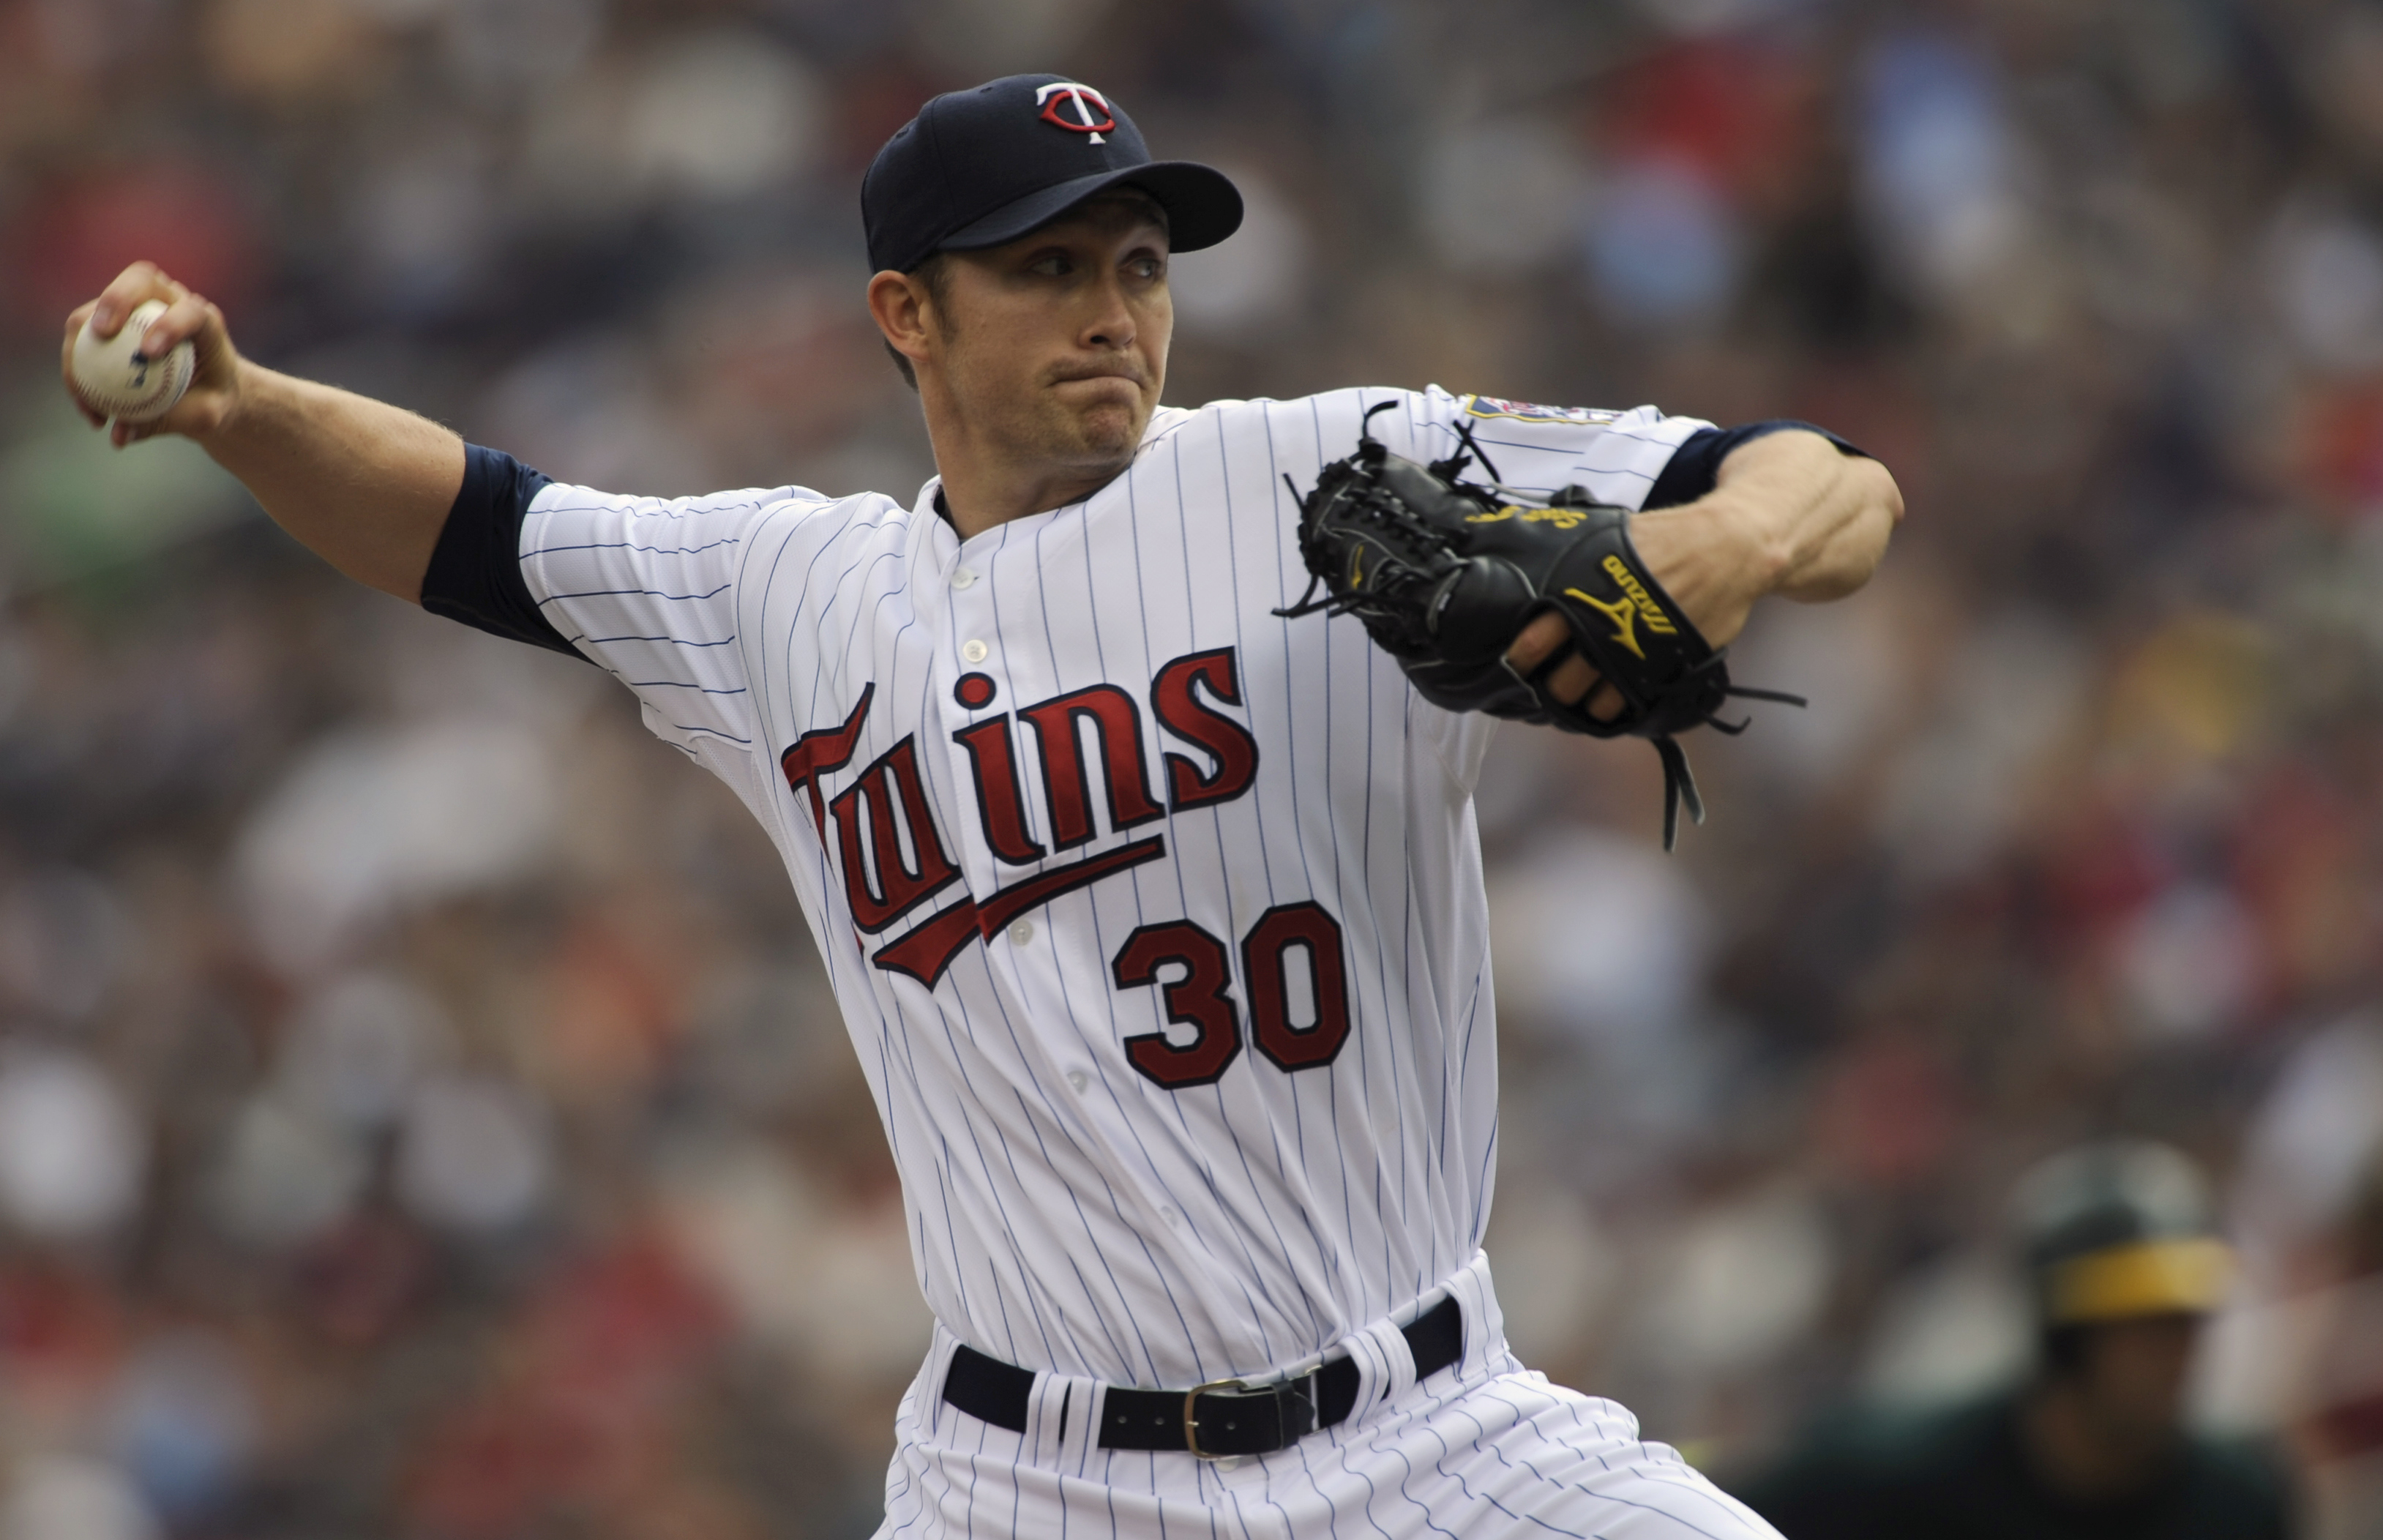 MINNEAPOLIS, MN - APRIL 10: Starting pitcher Scott Baker #30 of the Minnesota Twins throws against the Oakland Athletics during the first inning of a game on April 10, 2011 at Target Field in Minneapolis, Minnesota. (Photo by Hannah Foslien/Getty Images)